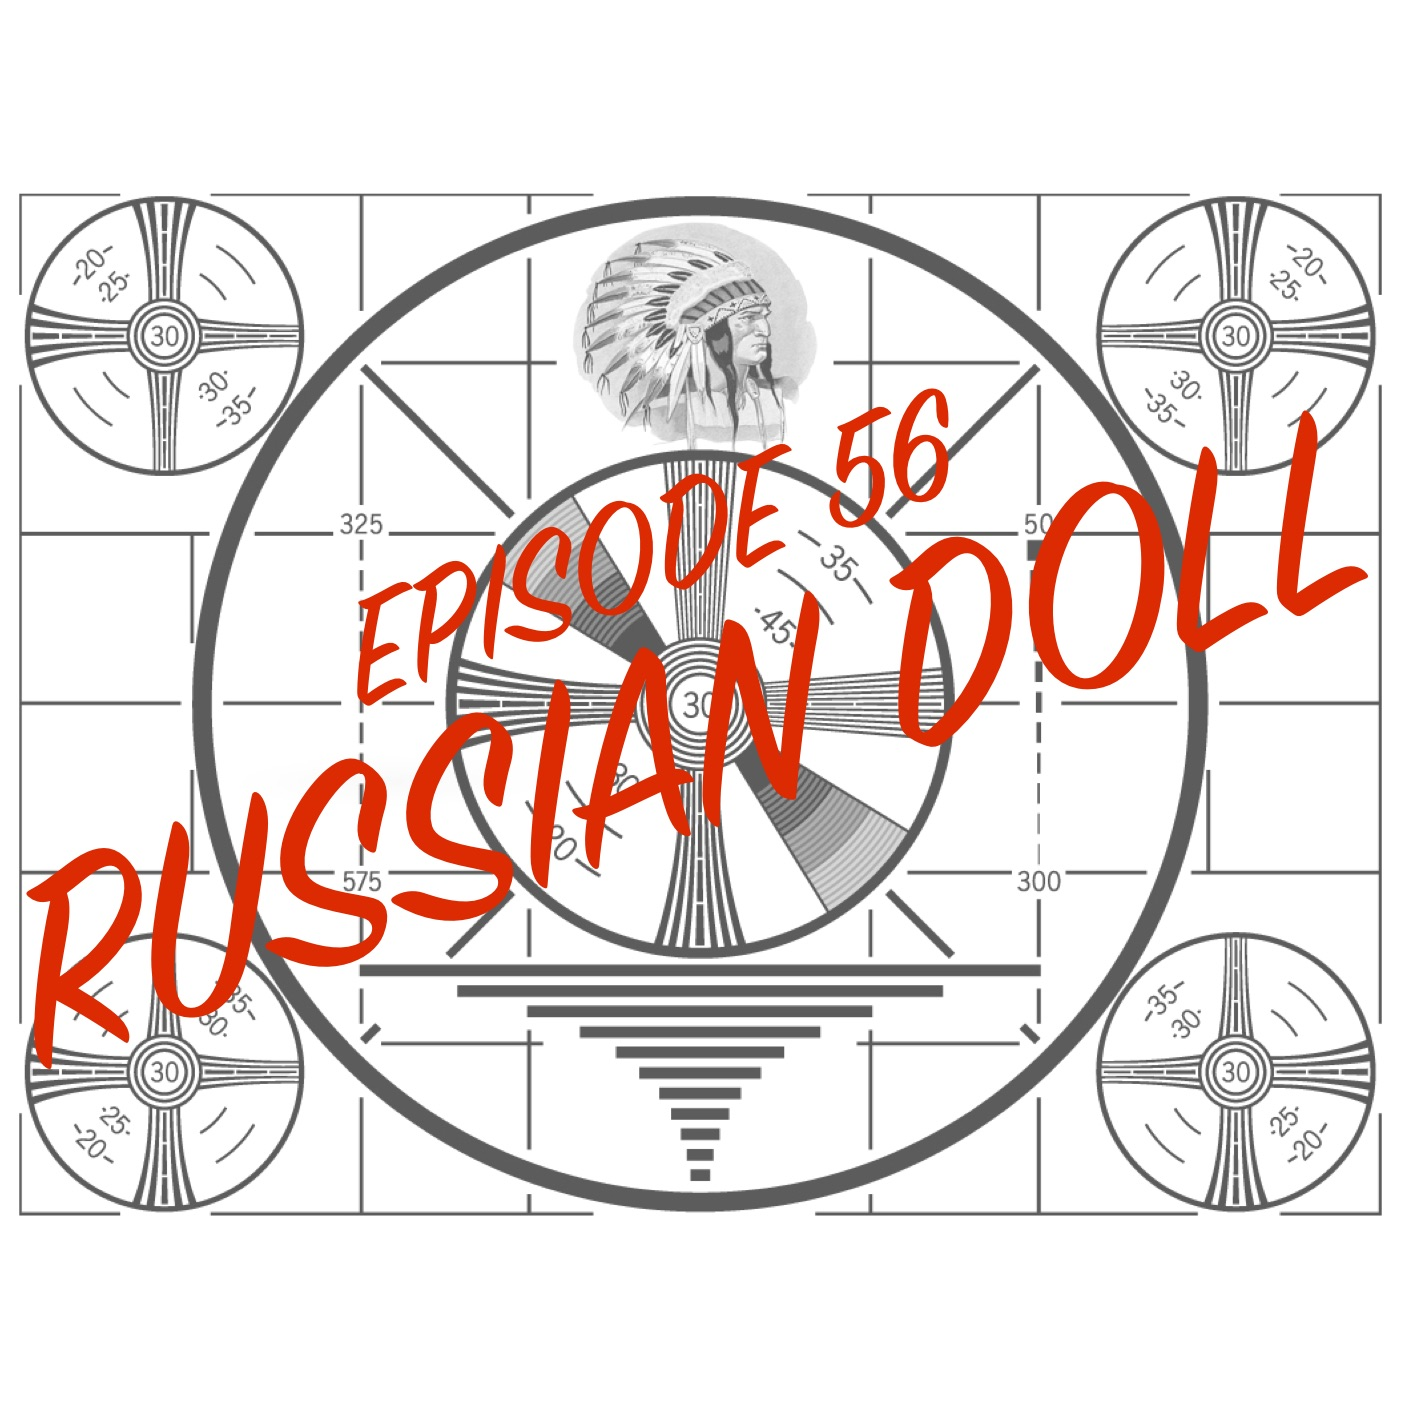 Episode 56 - Russian Doll